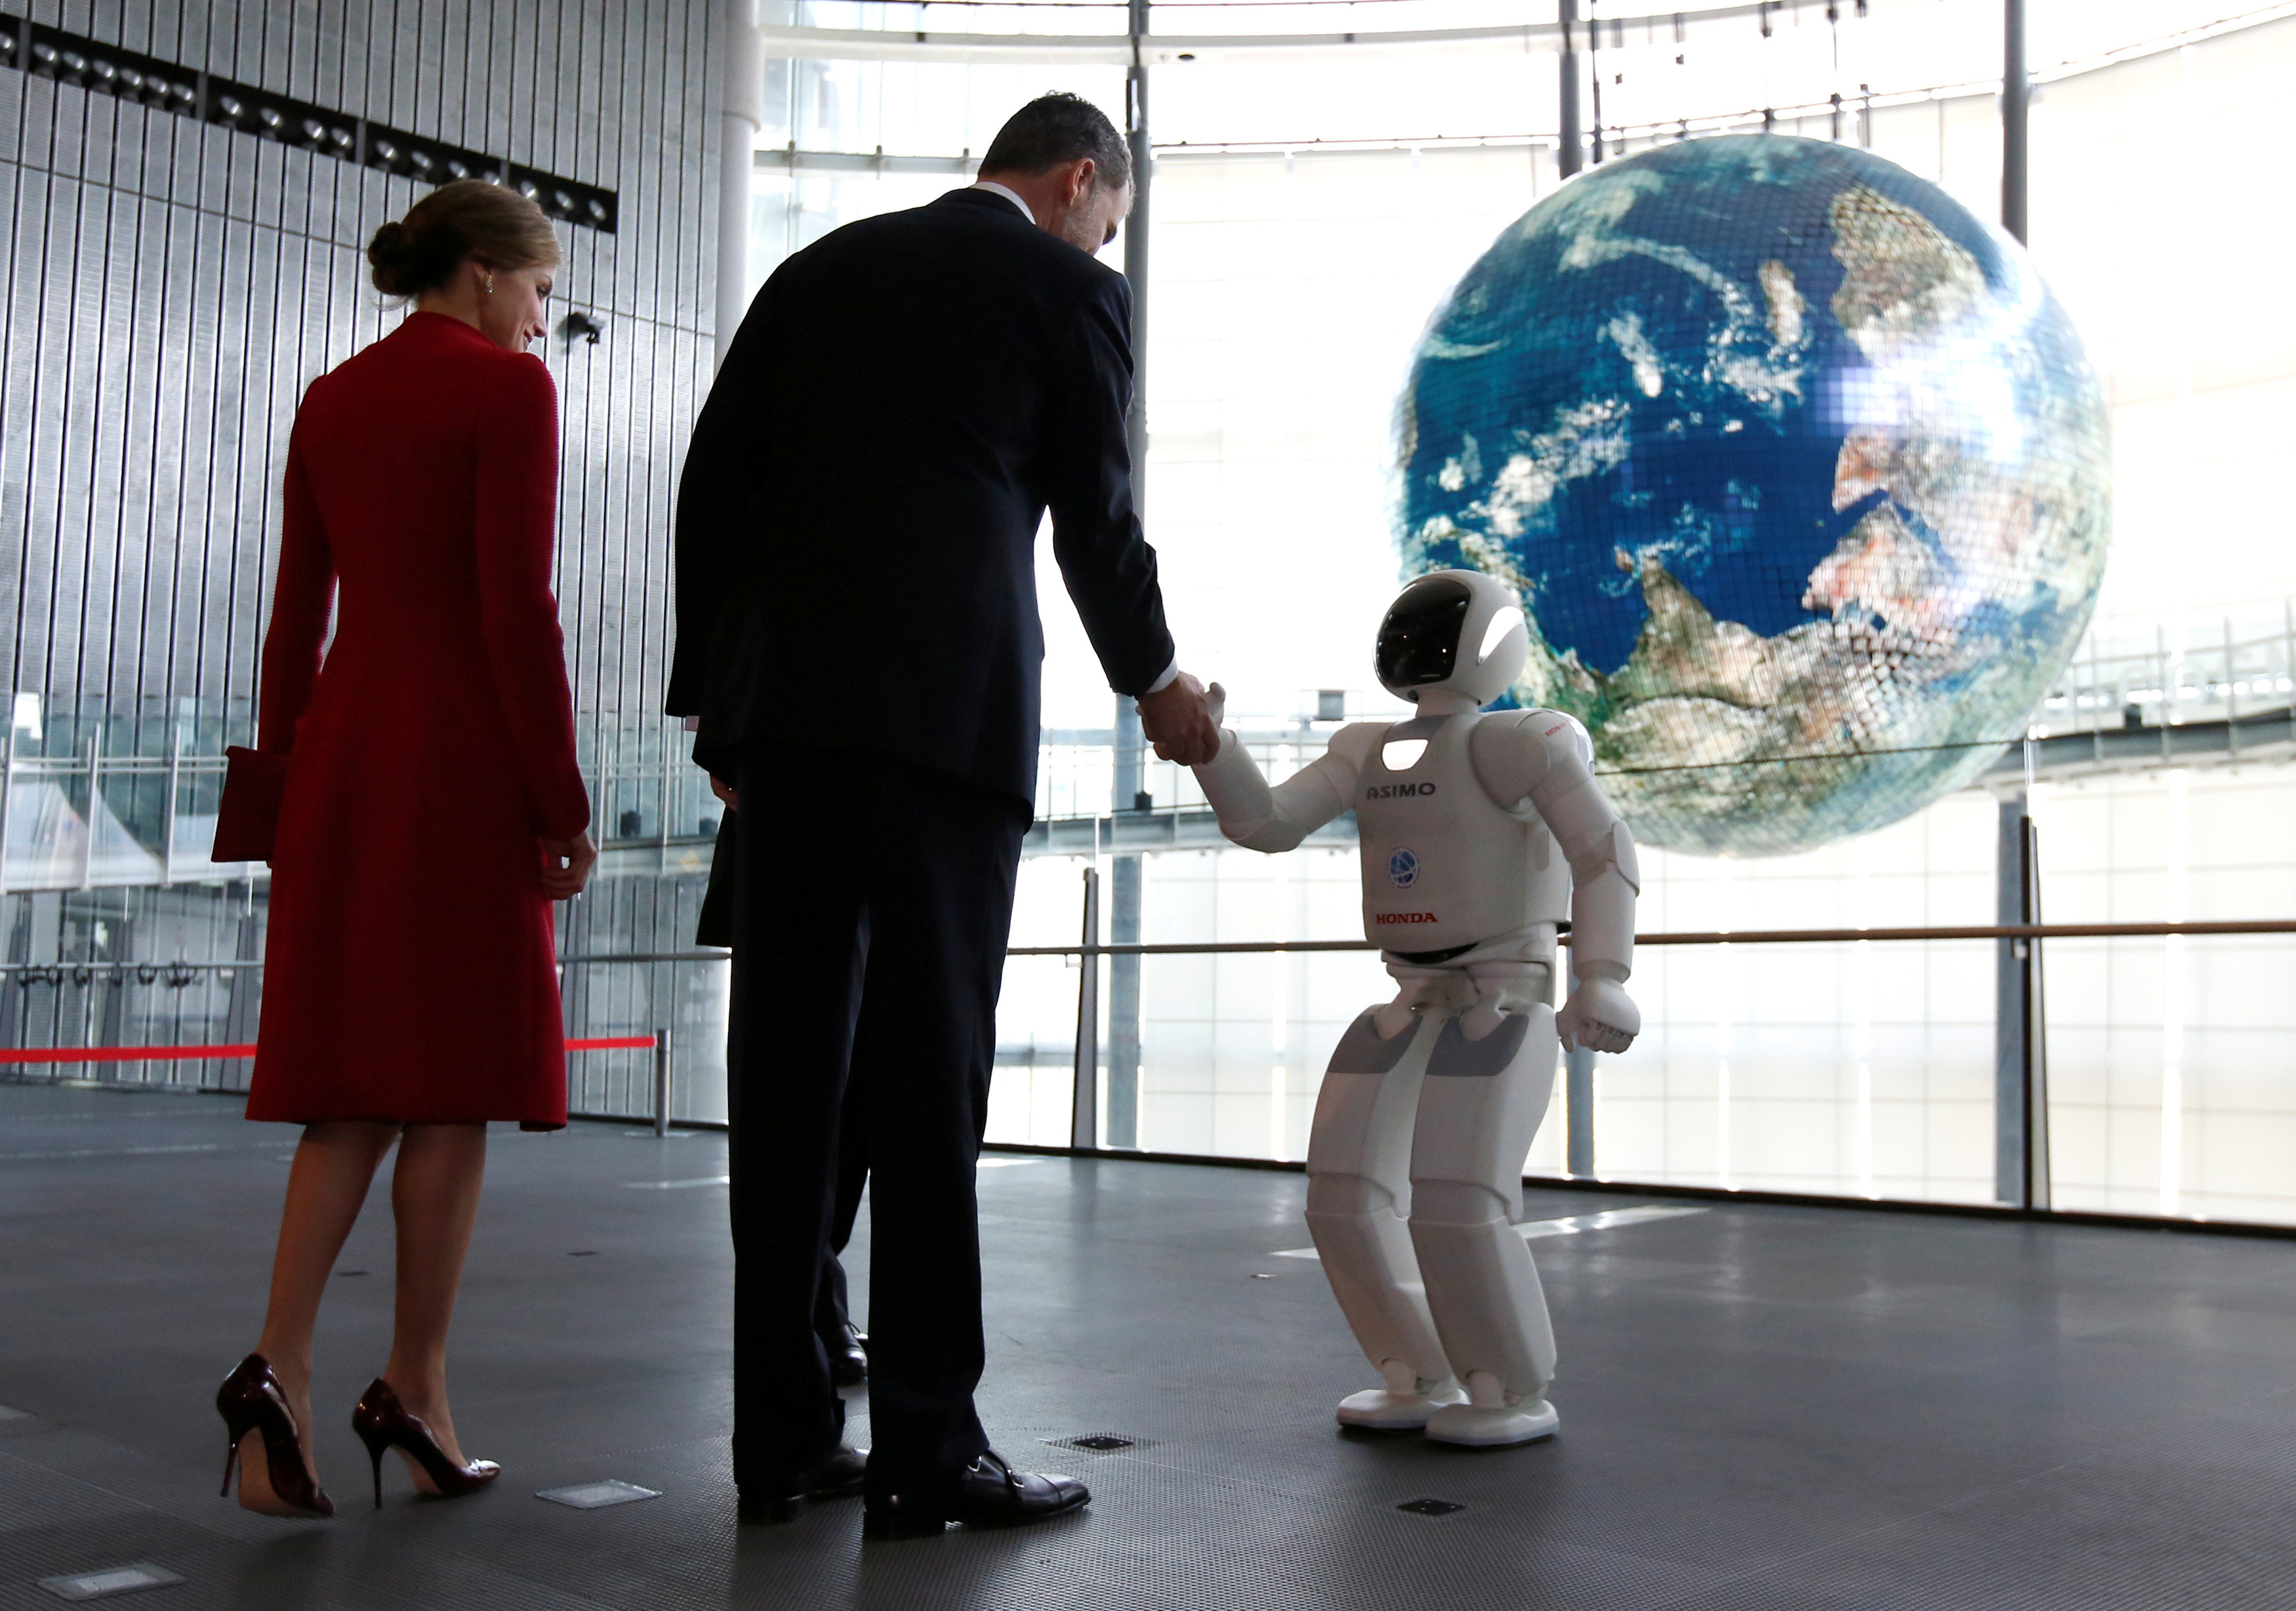 Spain's King Felipe, accompanied by Queen Letizia (L), shakes hands with Honda Motor's humanoid robot Asimo as they visit Miraikan (National Museum of Emerging Science and Innovation) in Tokyo, Japan April 5, 2017. REUTERS/Issei Kato     TPX IMAGES OF THE DAY - RC16A2135340